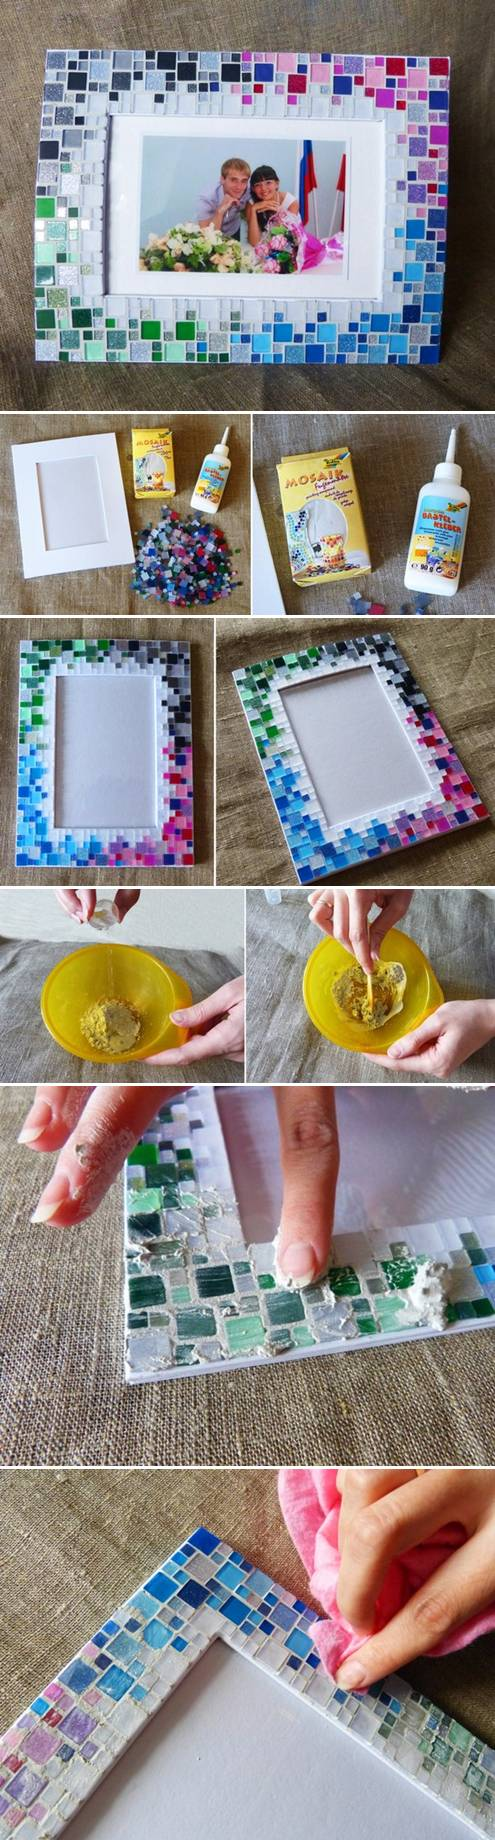 DIY Picture Frame Ideas – Thinking Outside The Box